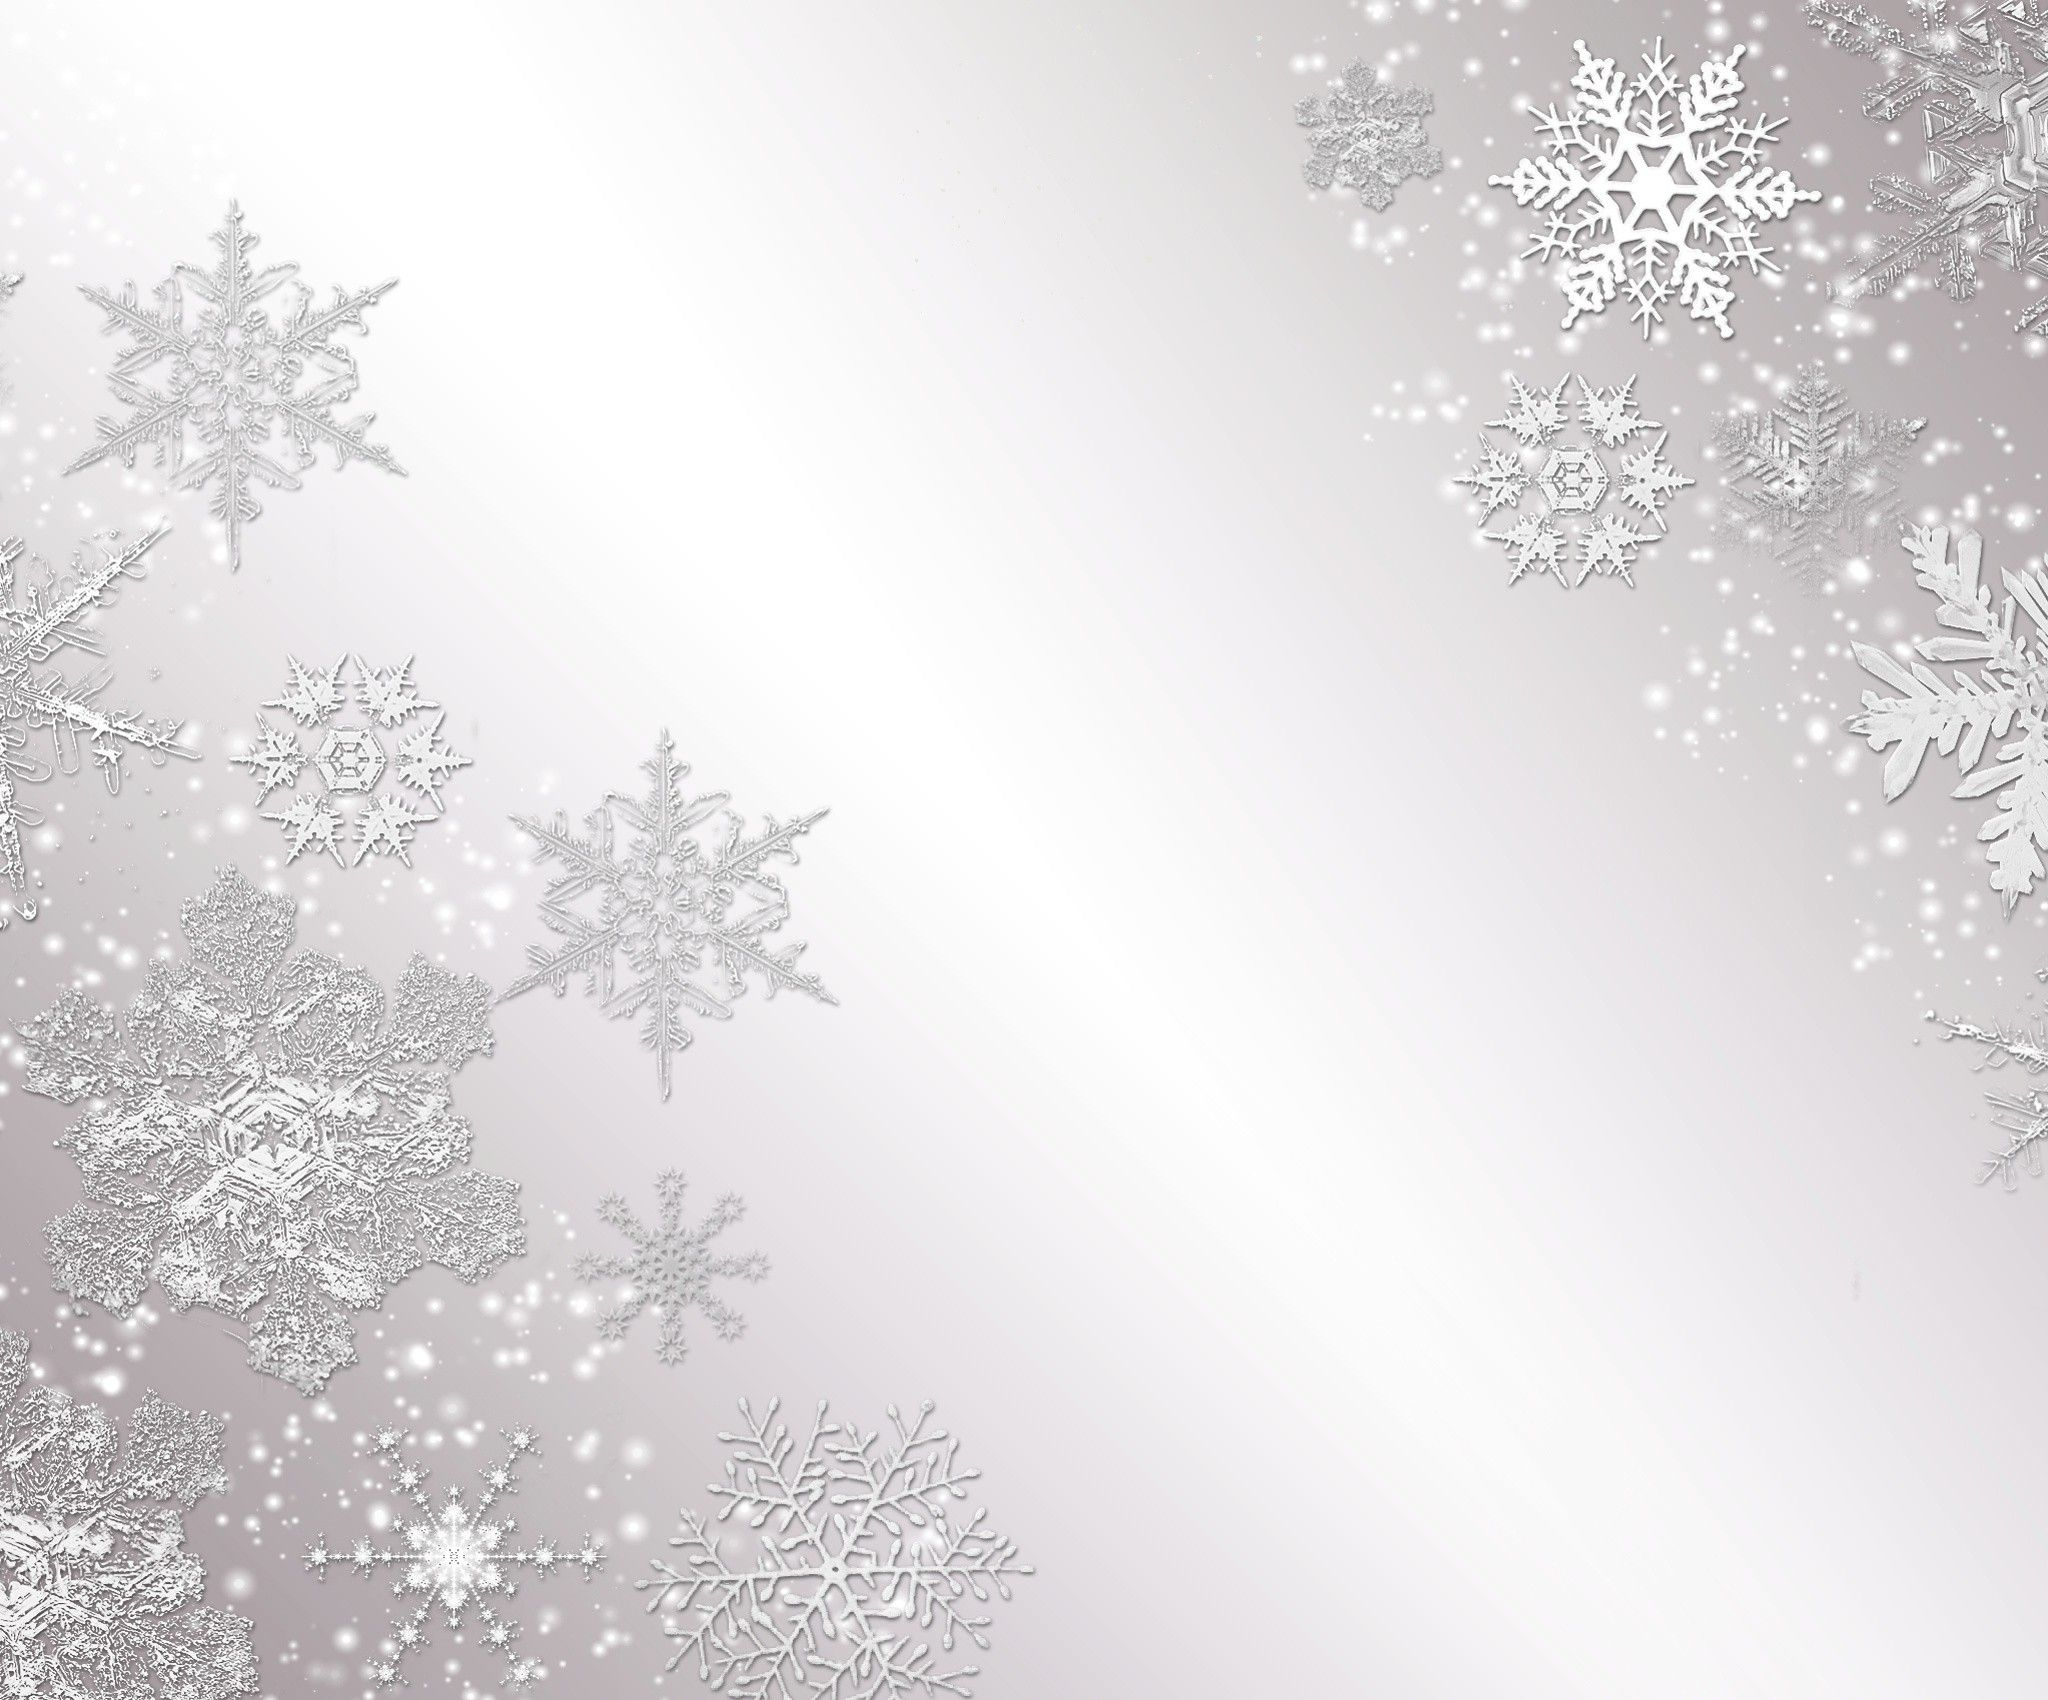 Snowflakes on Gray Background iPad Wallpaper HD Silver